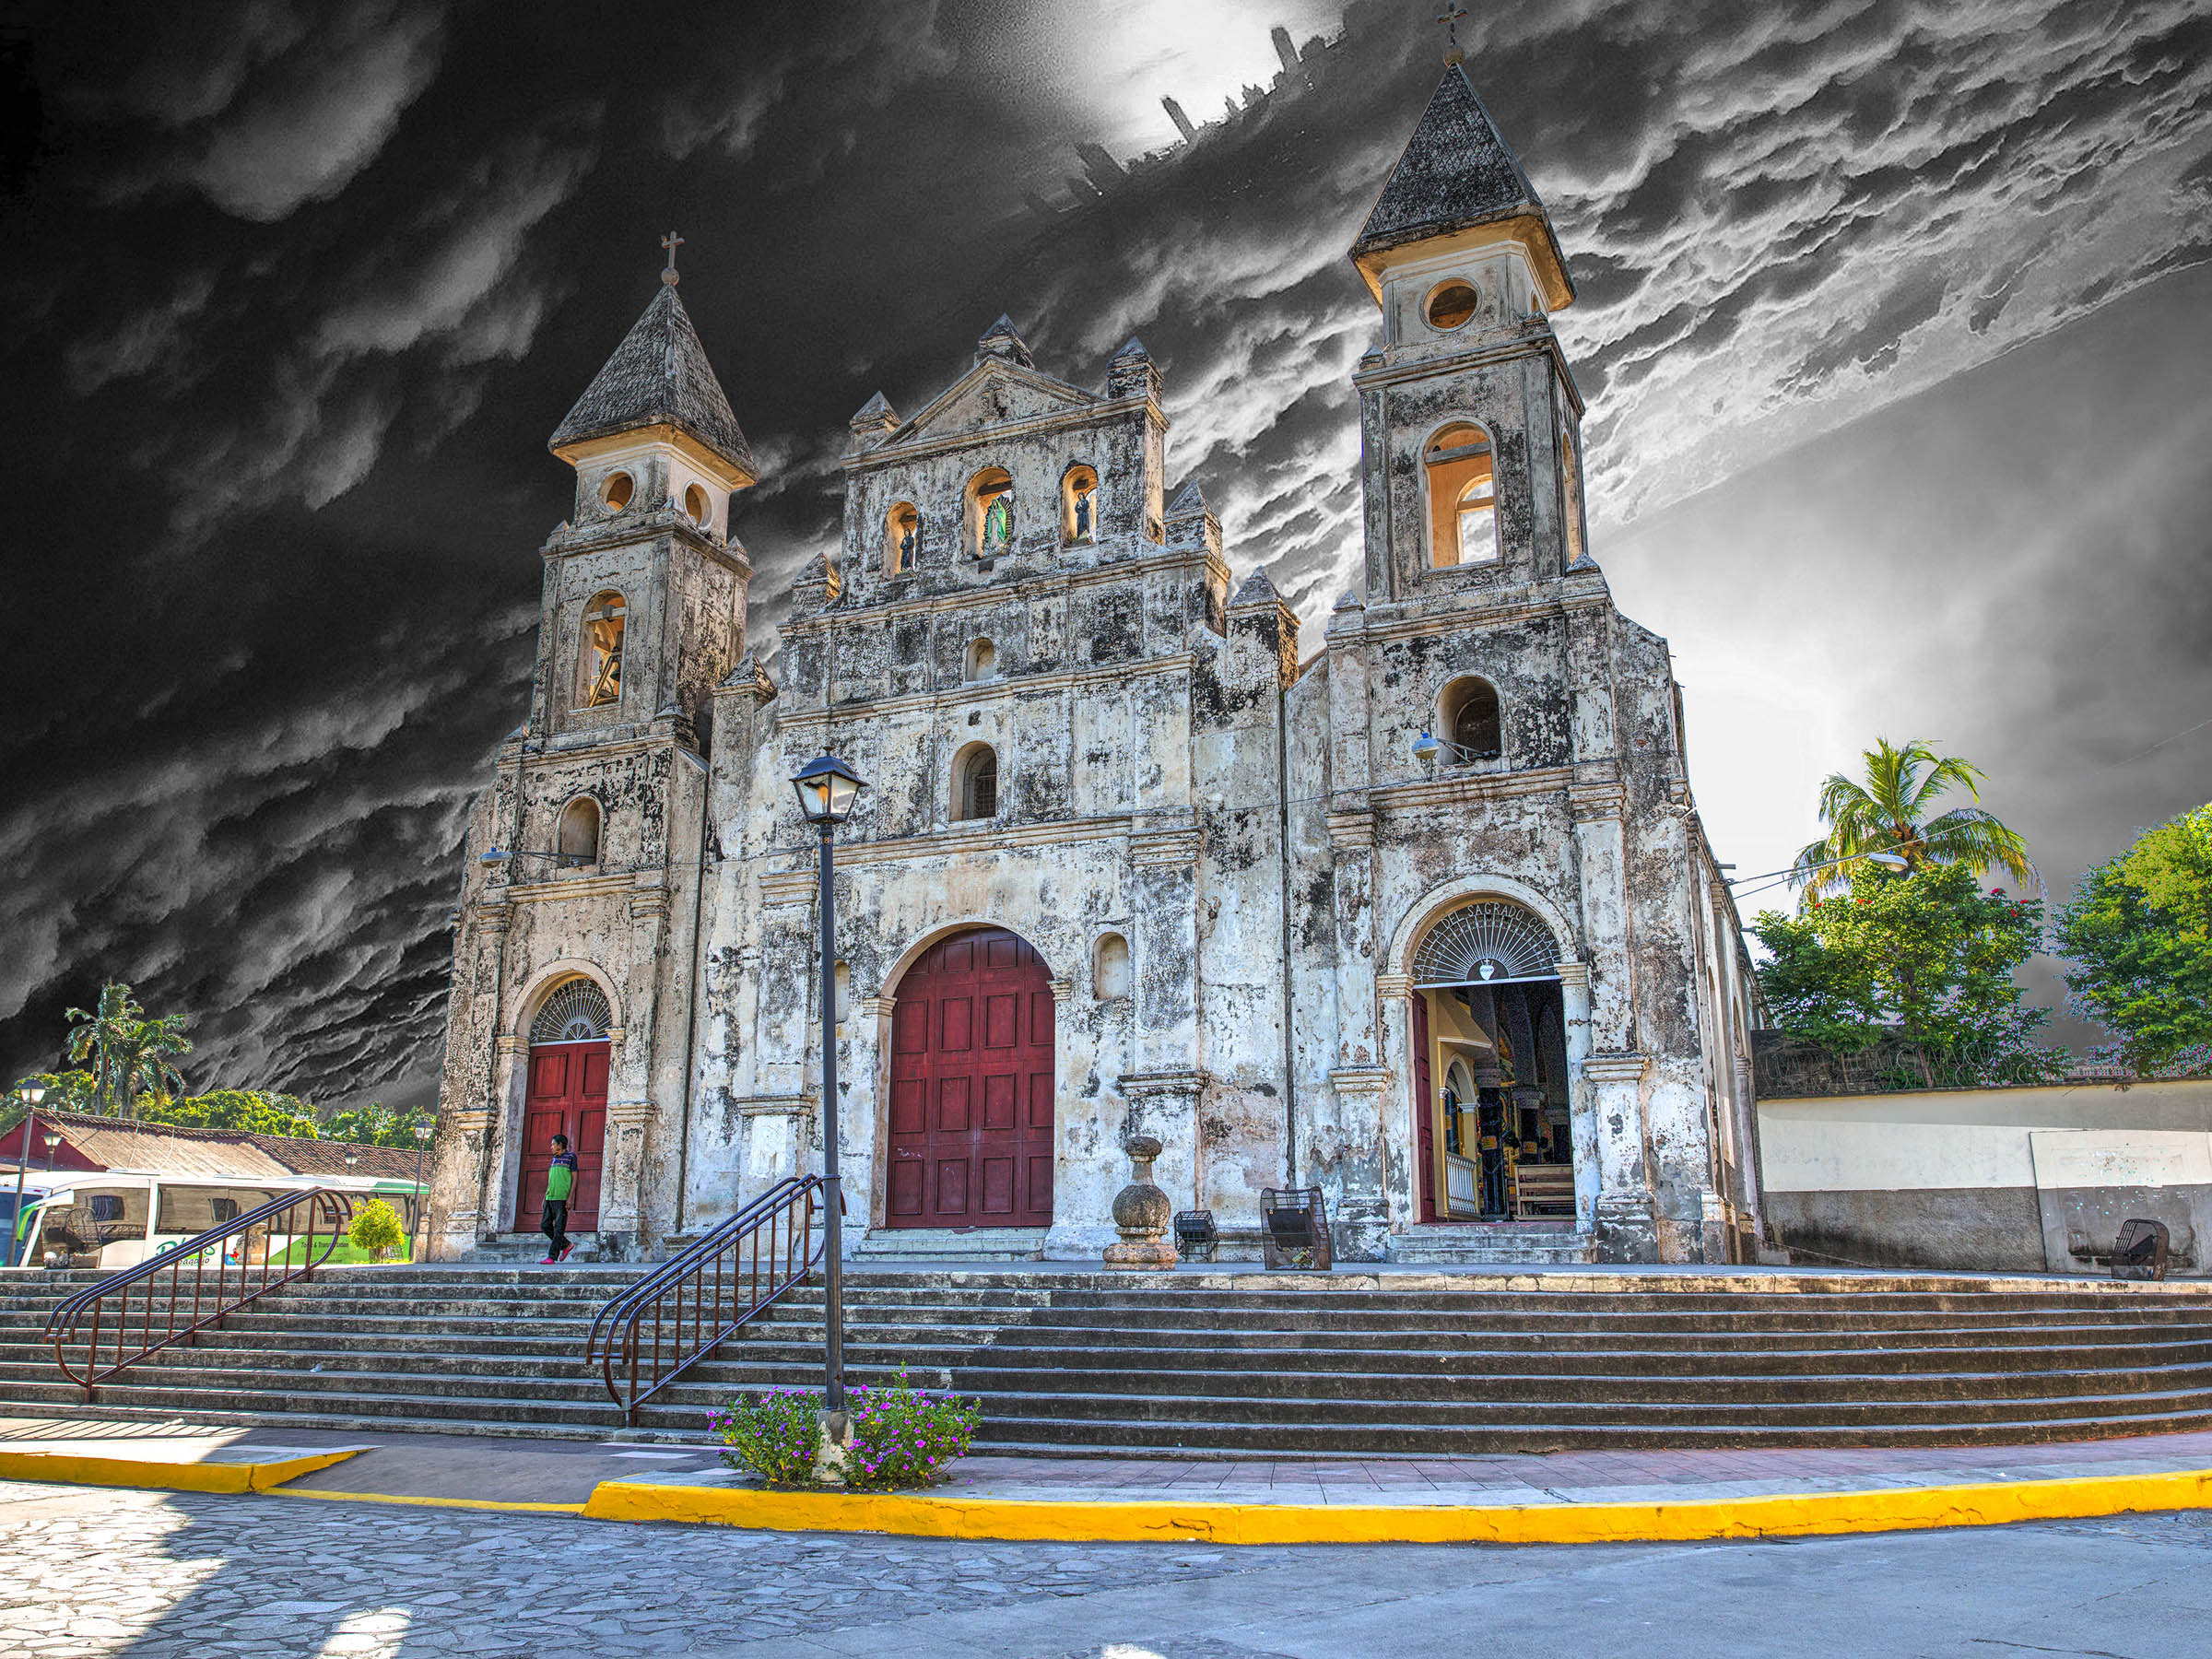 Granada Nicaragua Church with Chicago Sky Landscape Photograph by Wick Beavers Photographer NYC LA DC Miami Denver Santa Fe